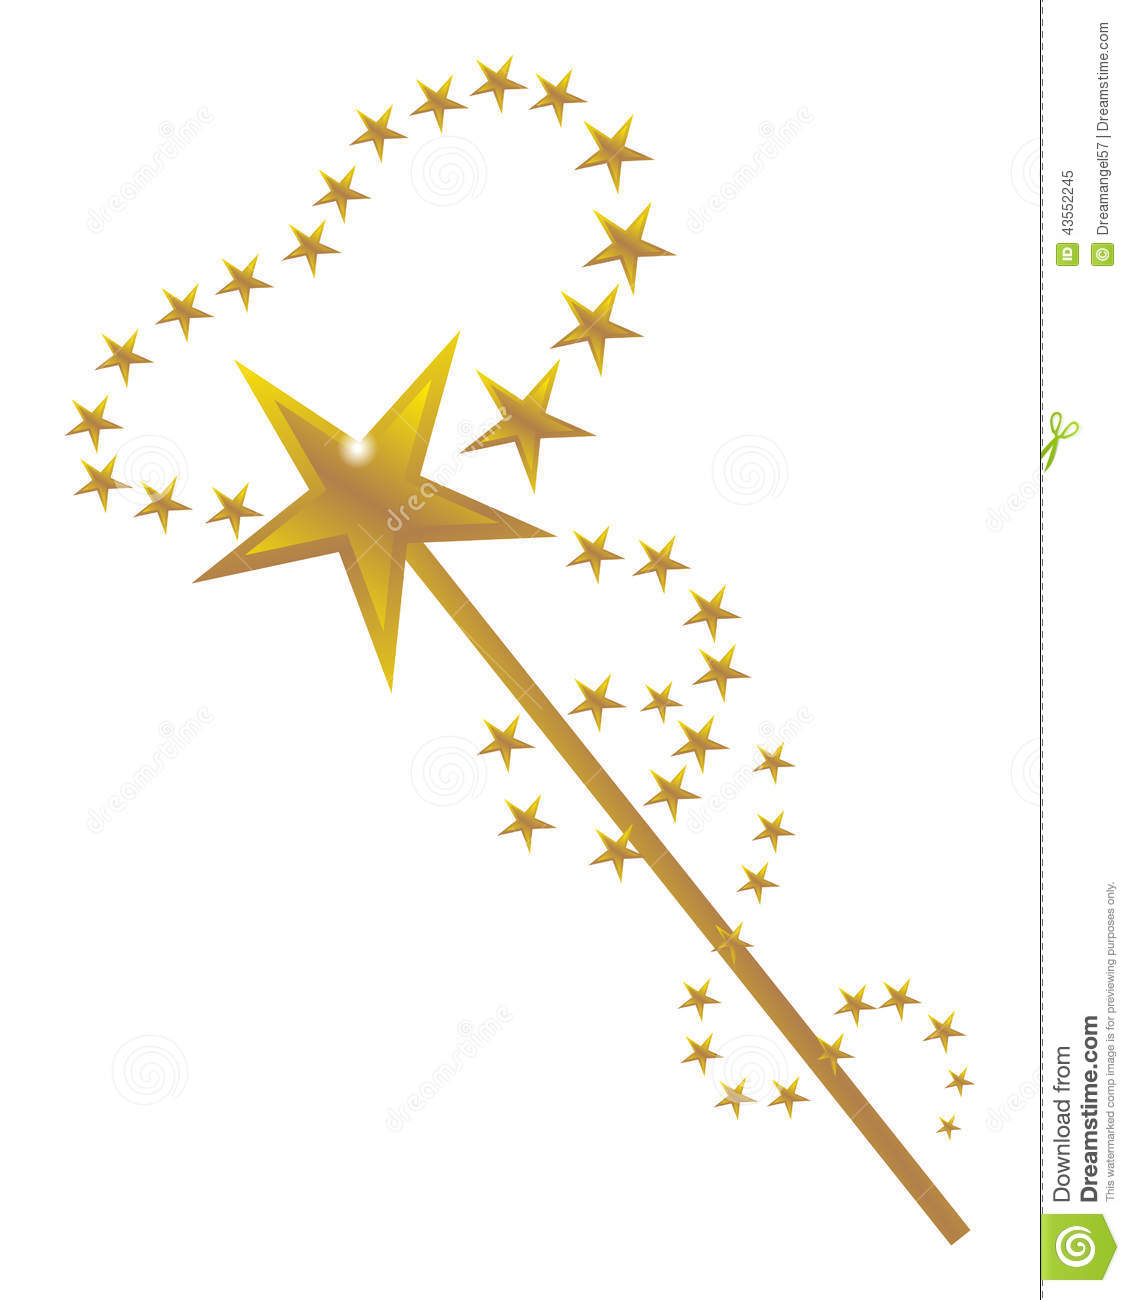 Vector illustration of a magic wand with golden stars design on a ...